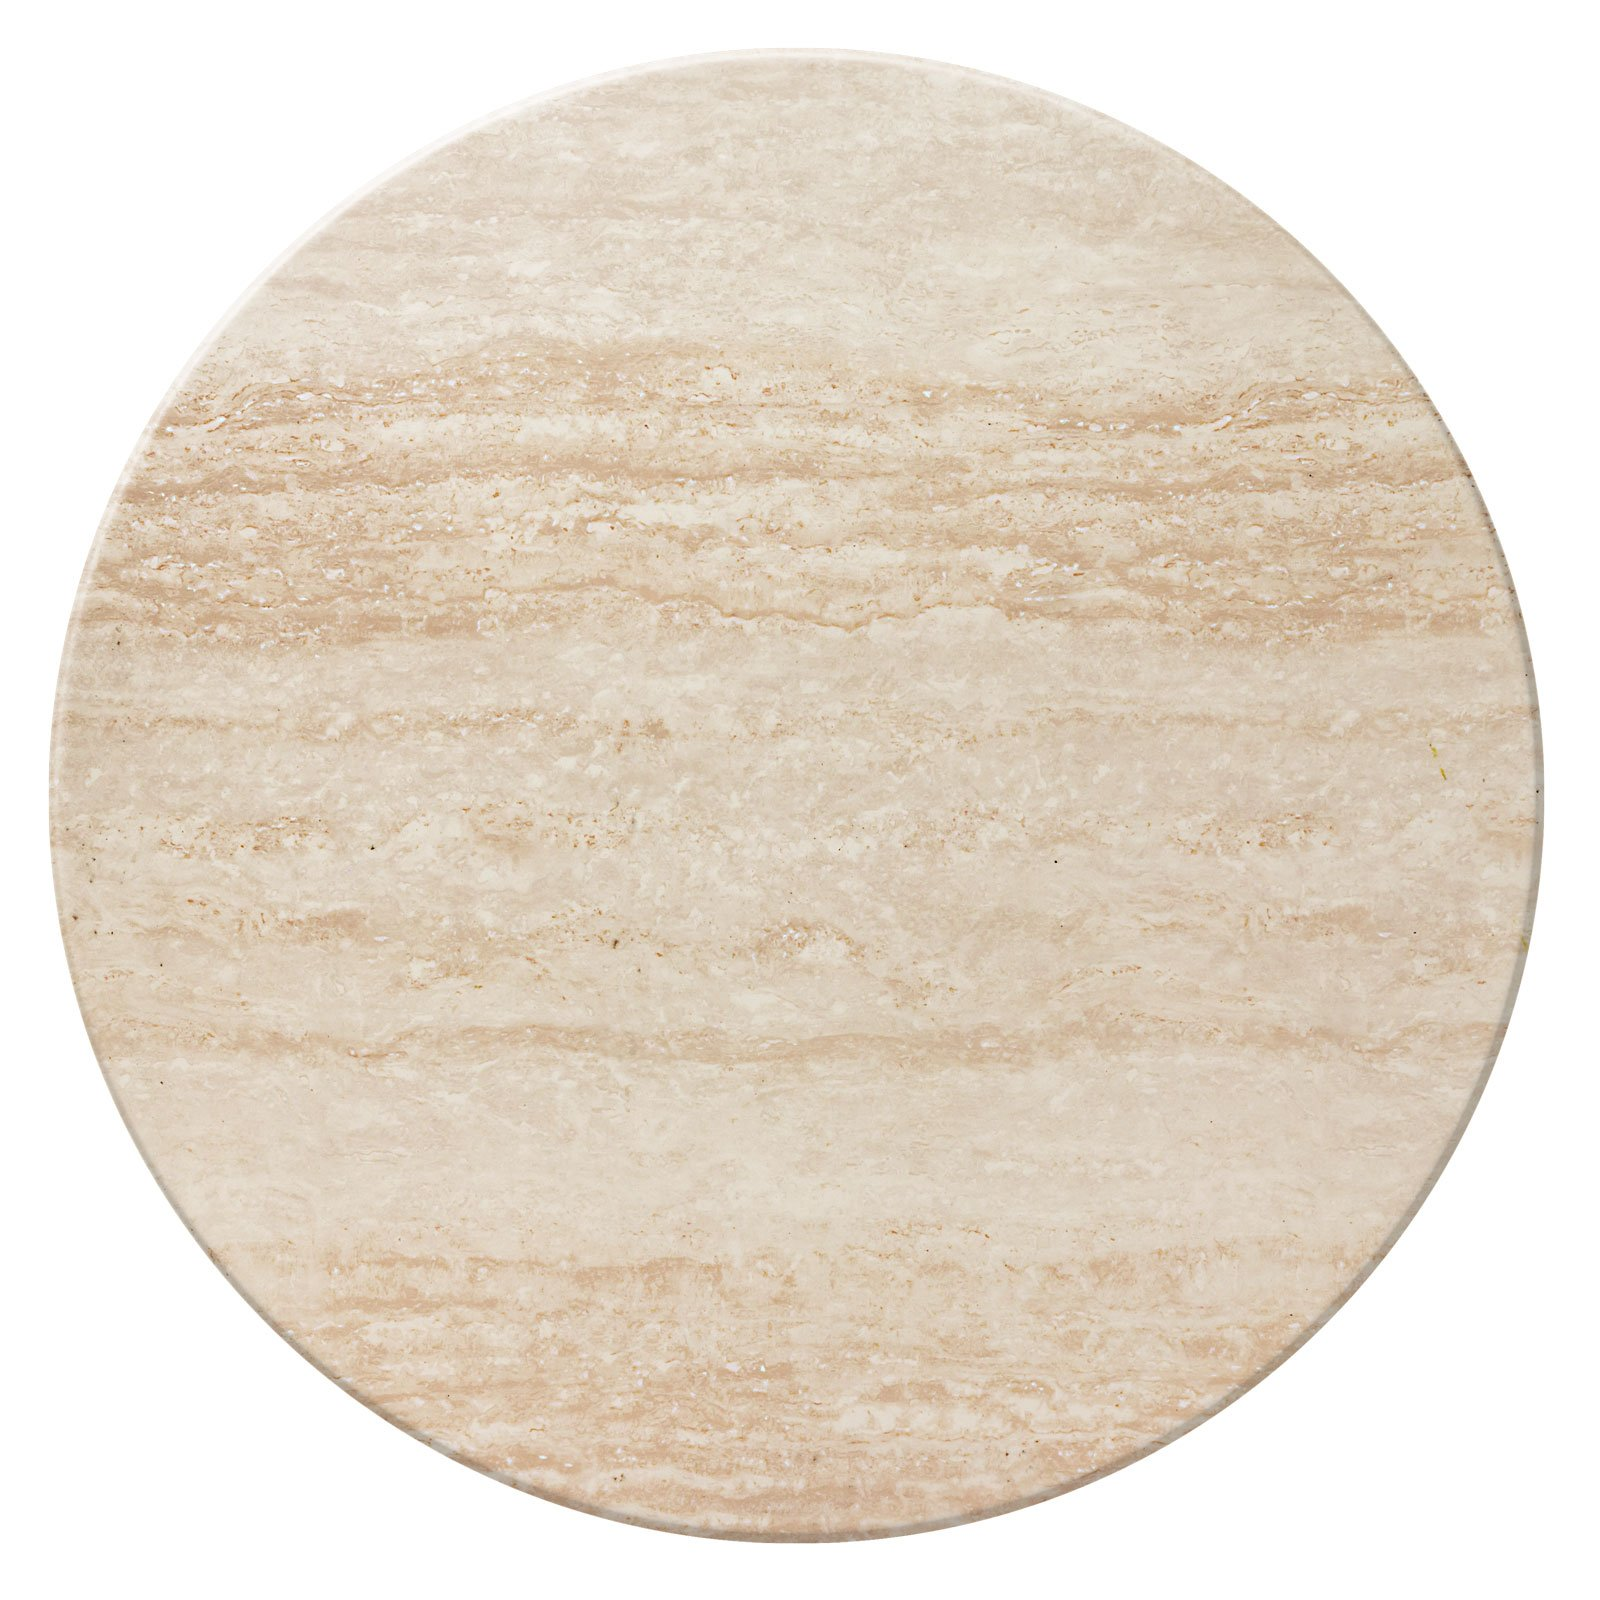 Duratop 36'' Round Table Top in Travertine